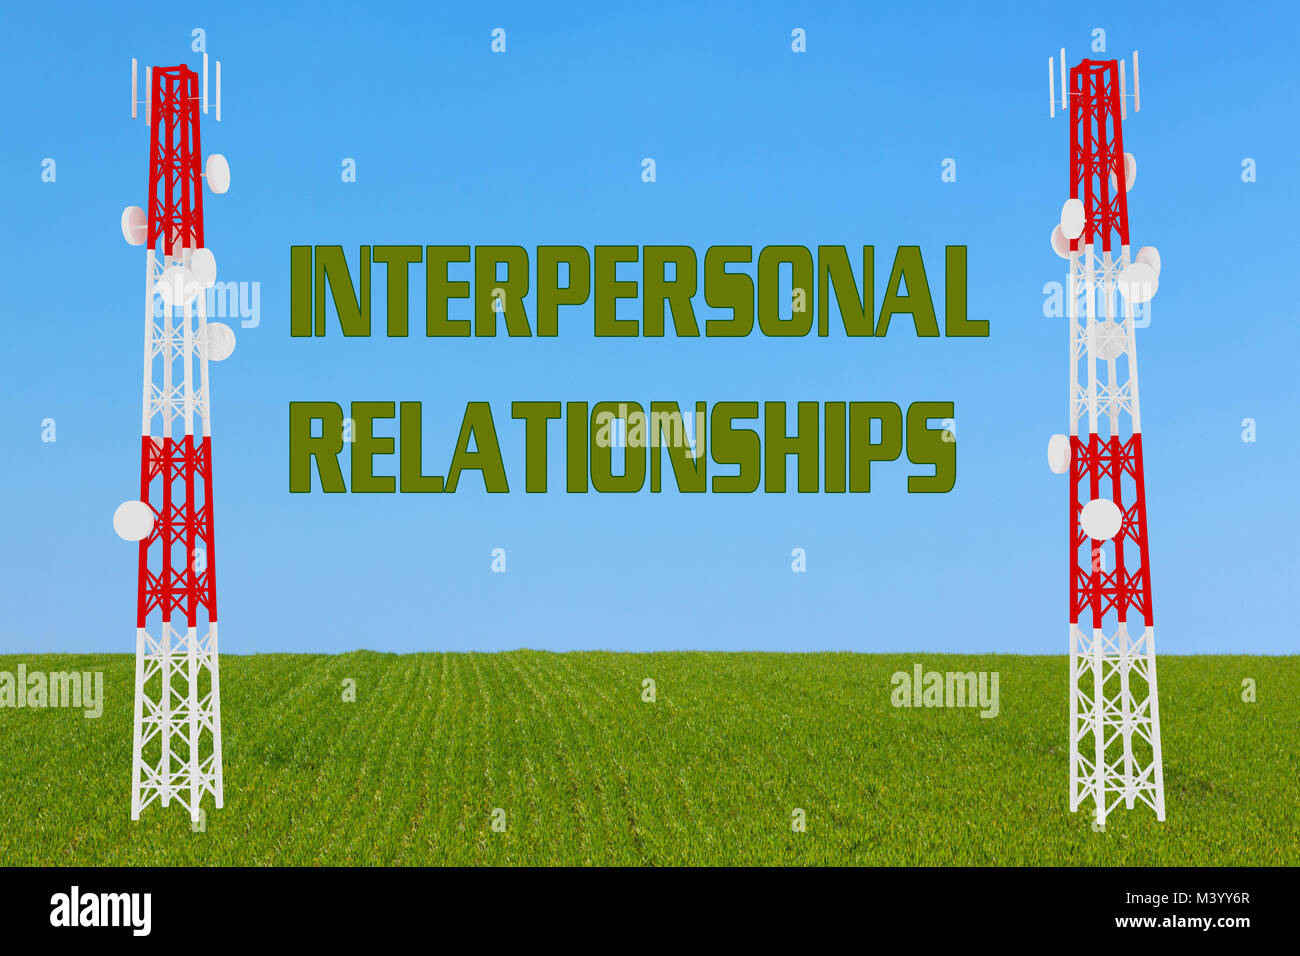 3D illustration of INTERPERSONAL RELATIONSHIPS script two communication poles - Stock Image